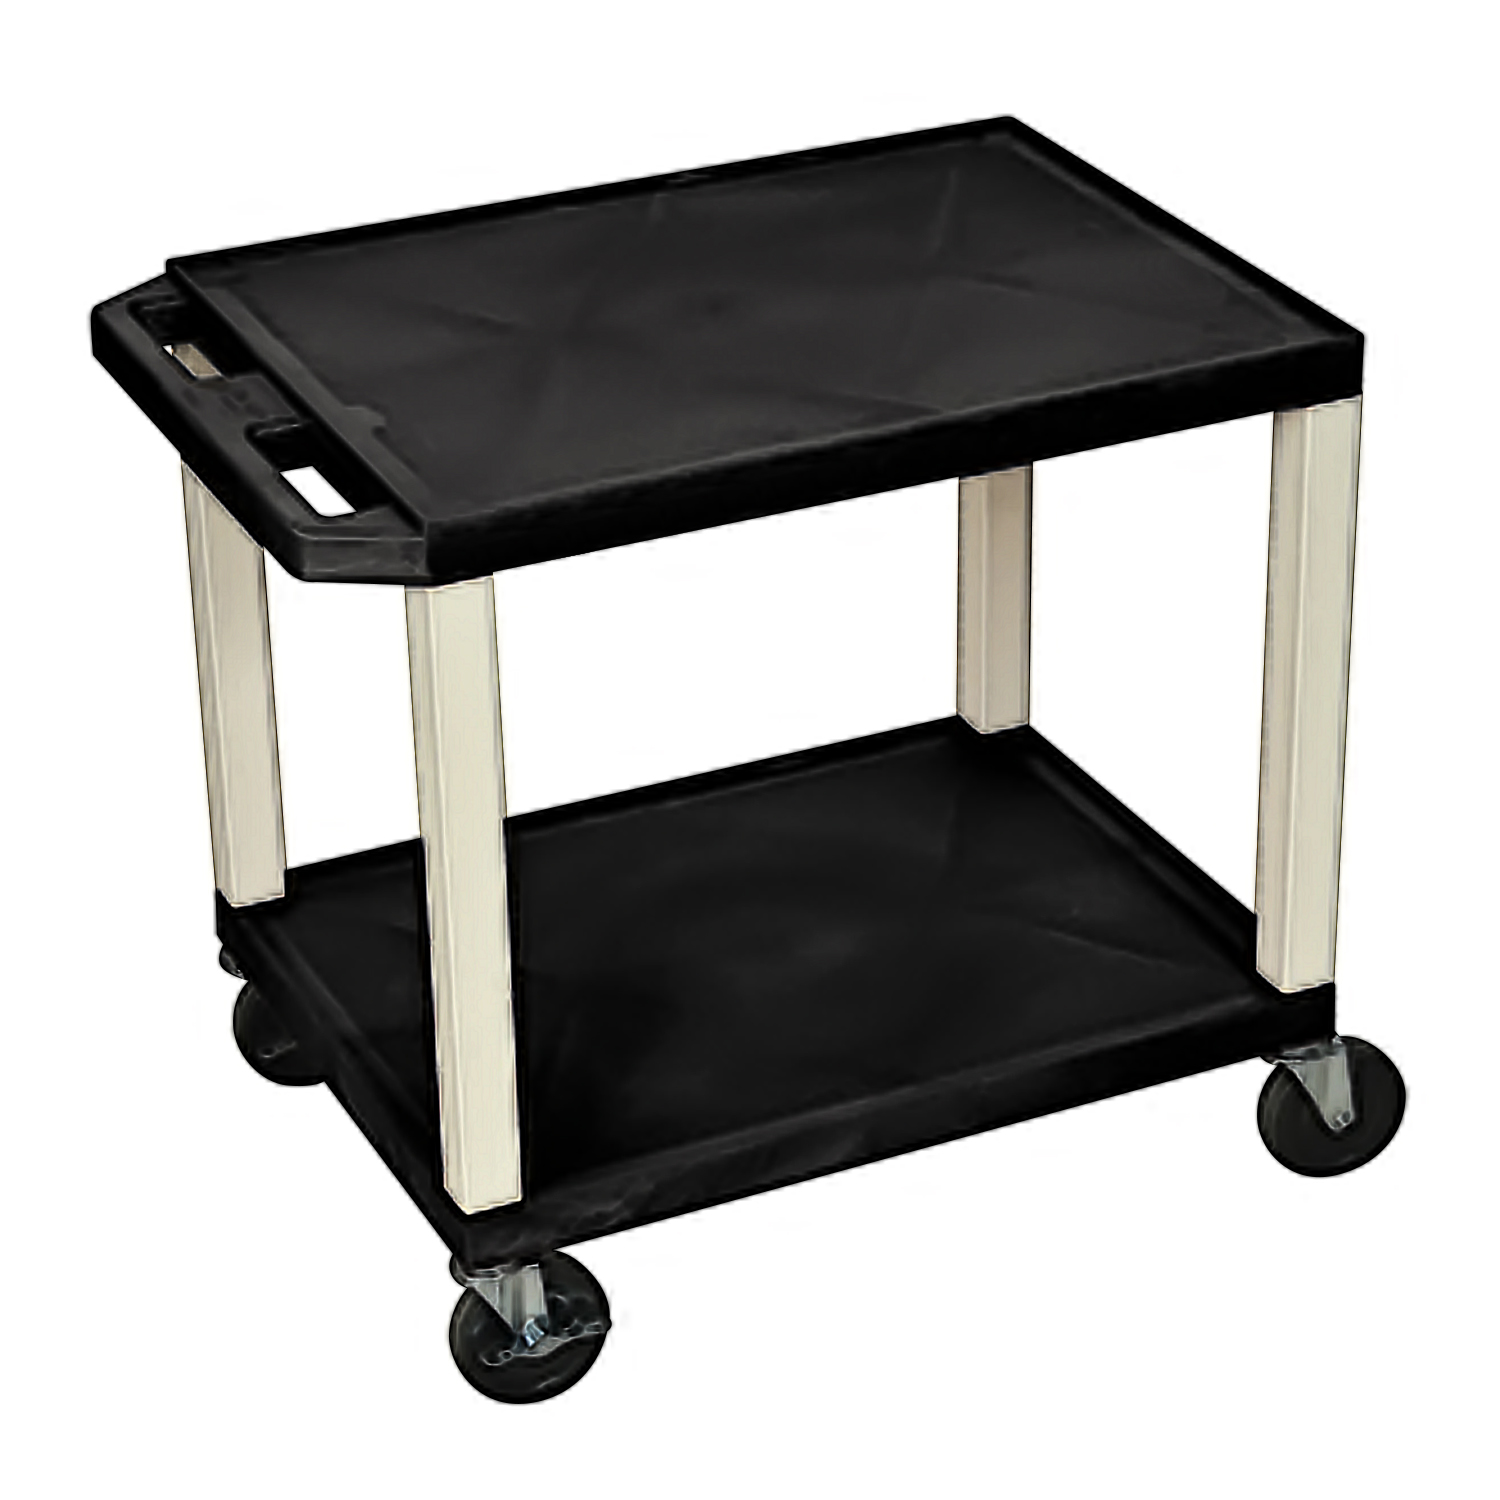 Offex OF-WT26E Tuffy Black 2 Shelf AV Cart